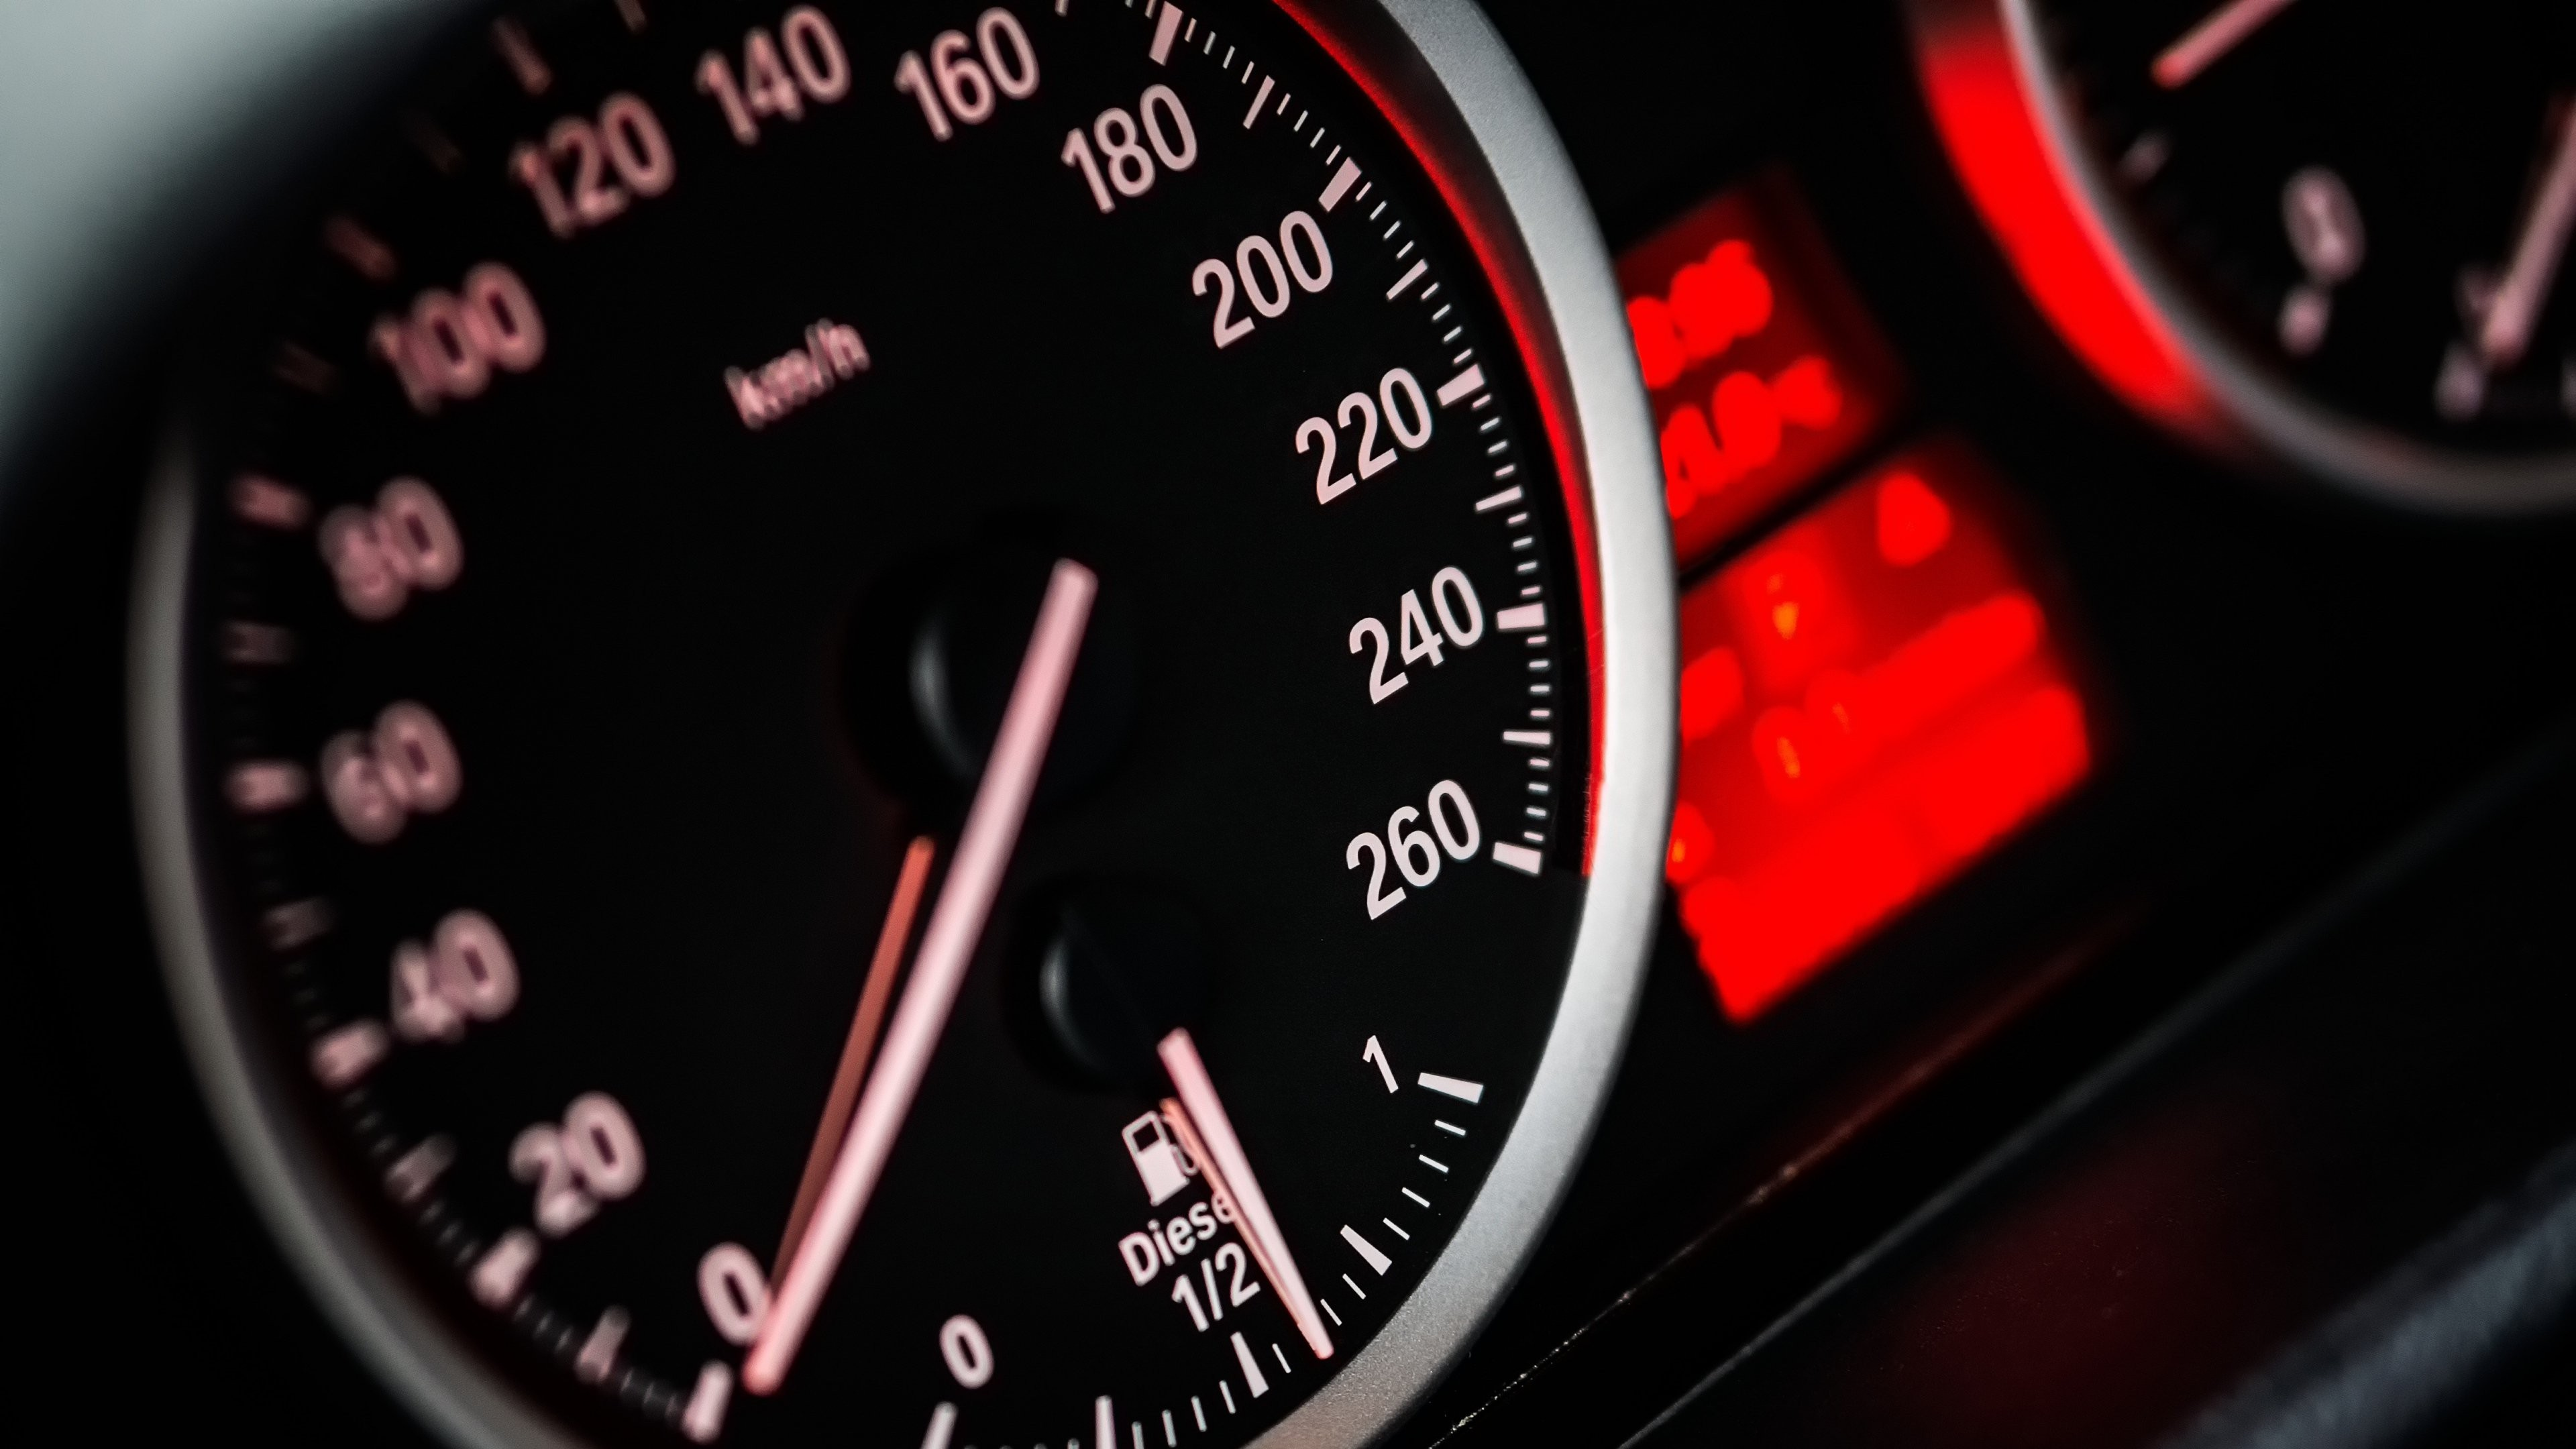 speedometer, car, bmw wallpapers hd / desktop and mobile backgrounds